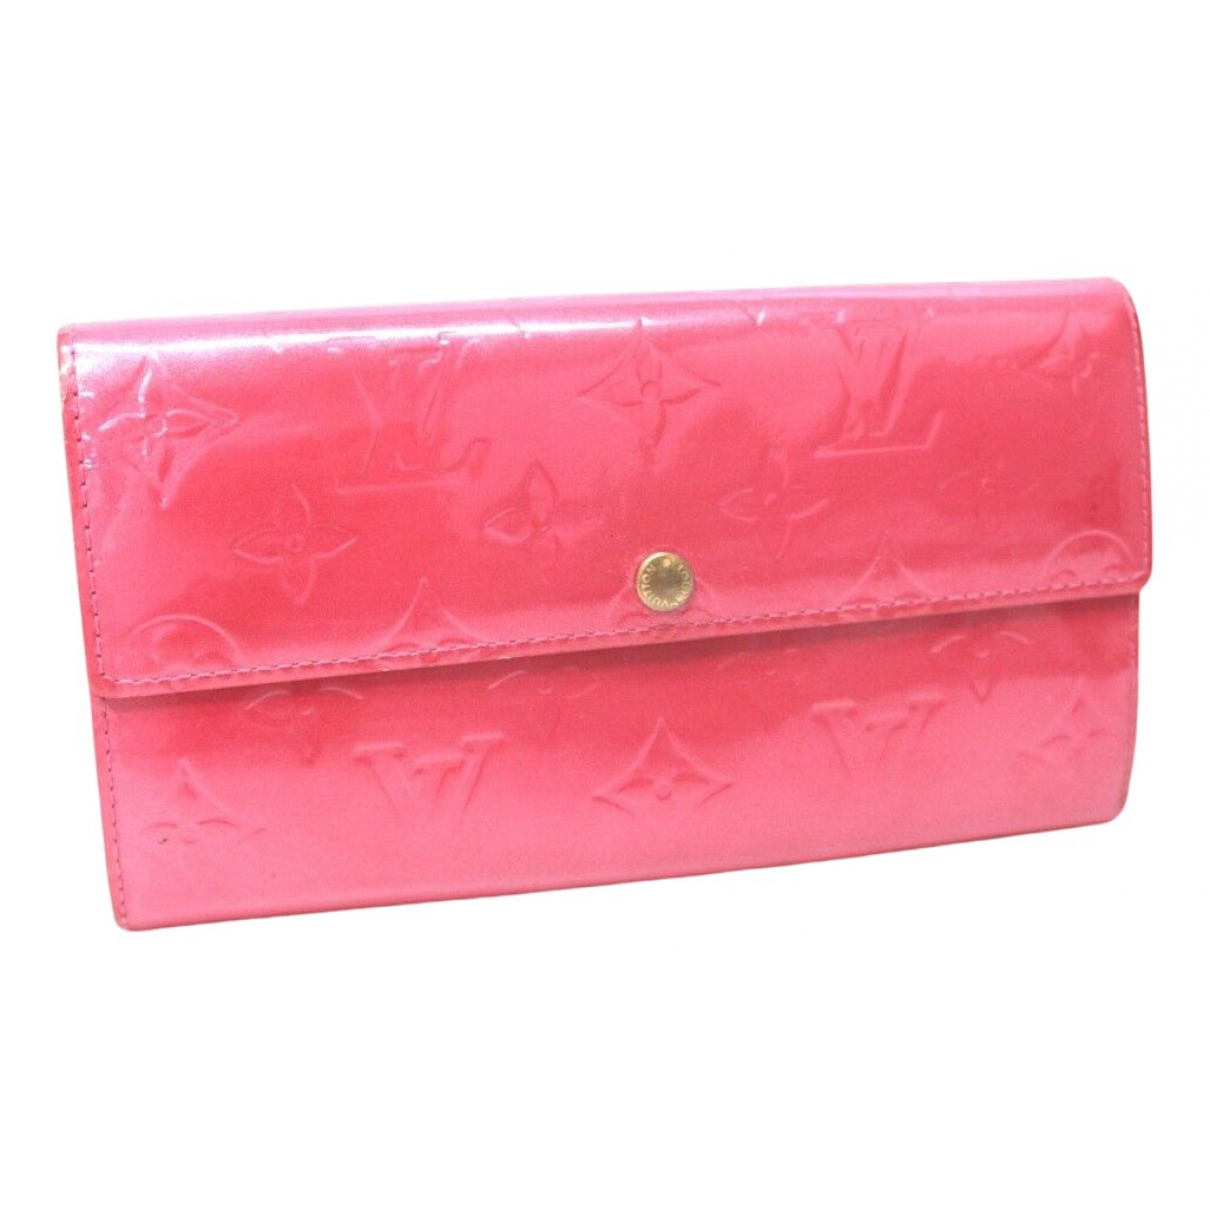 Louis Vuitton Sarah Portemonnaie in  Rosa Lackleder